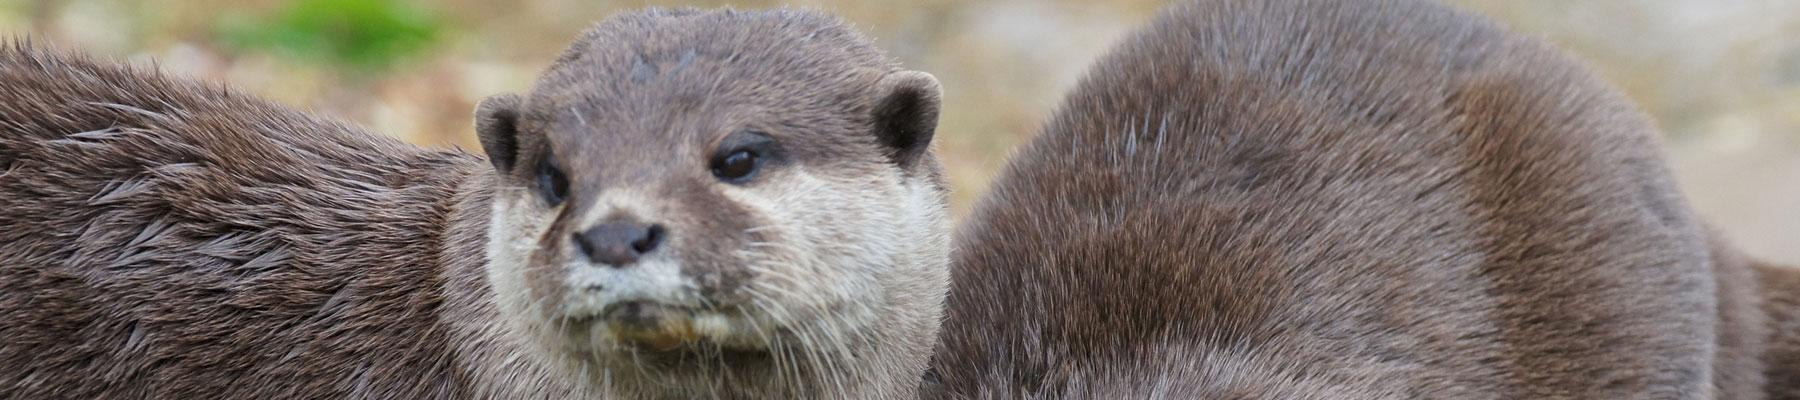 Asian Small-clawed Otter - now listed in CITES Appendix I. Photo used under CC BY-NC 2.0